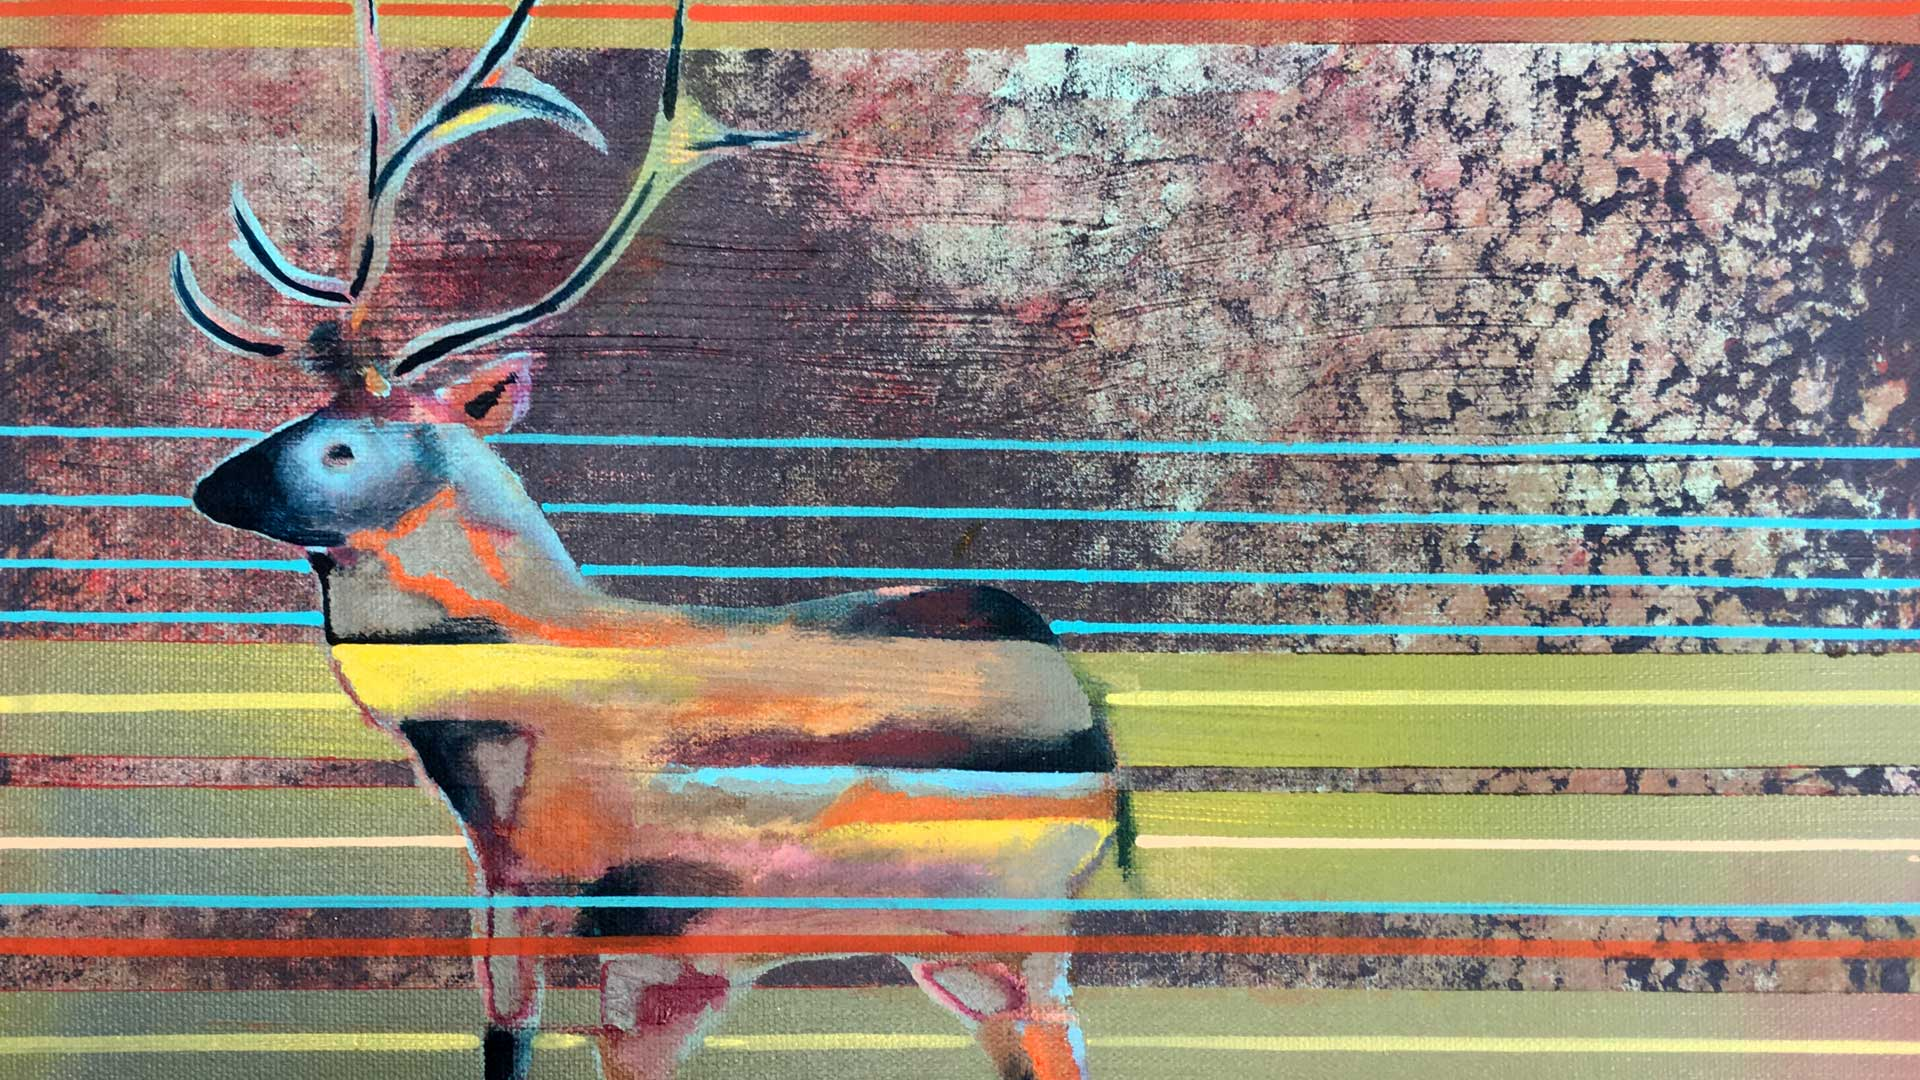 Issishto' (stag), acrylic on canvas by Billy Hensley